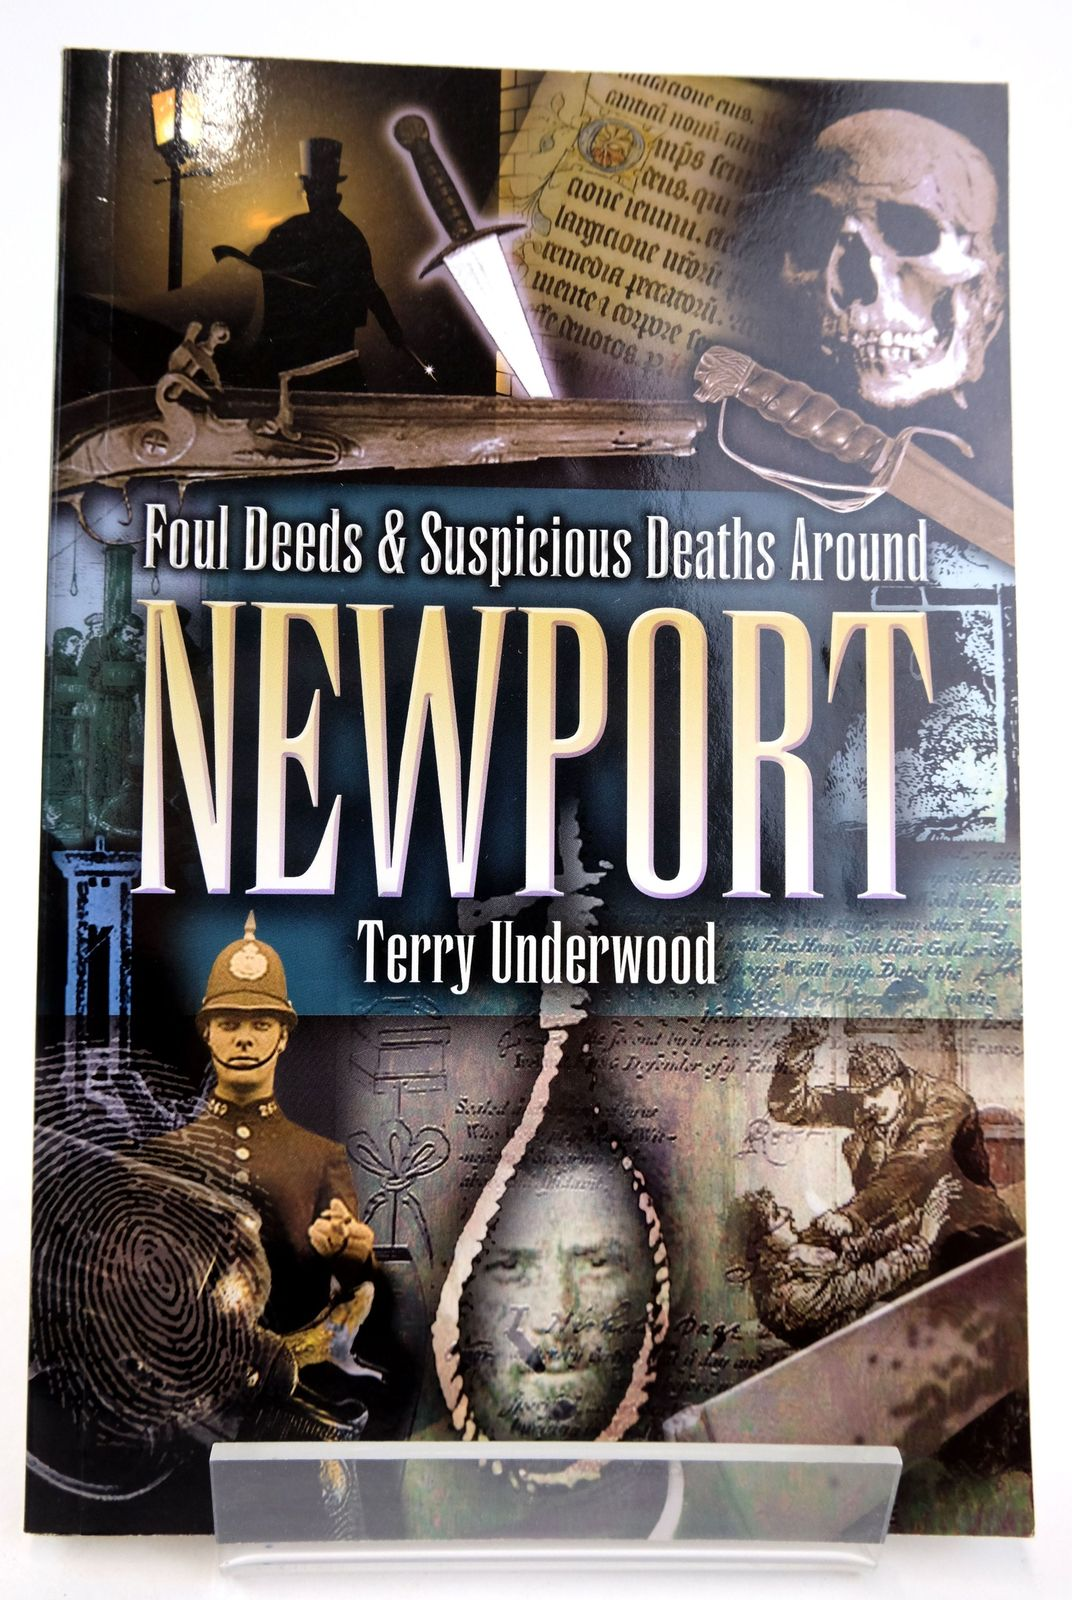 Photo of FOUL DEEDS & SUSPICIOUS DEATHS AROUND NEWPORT- Stock Number: 1819178